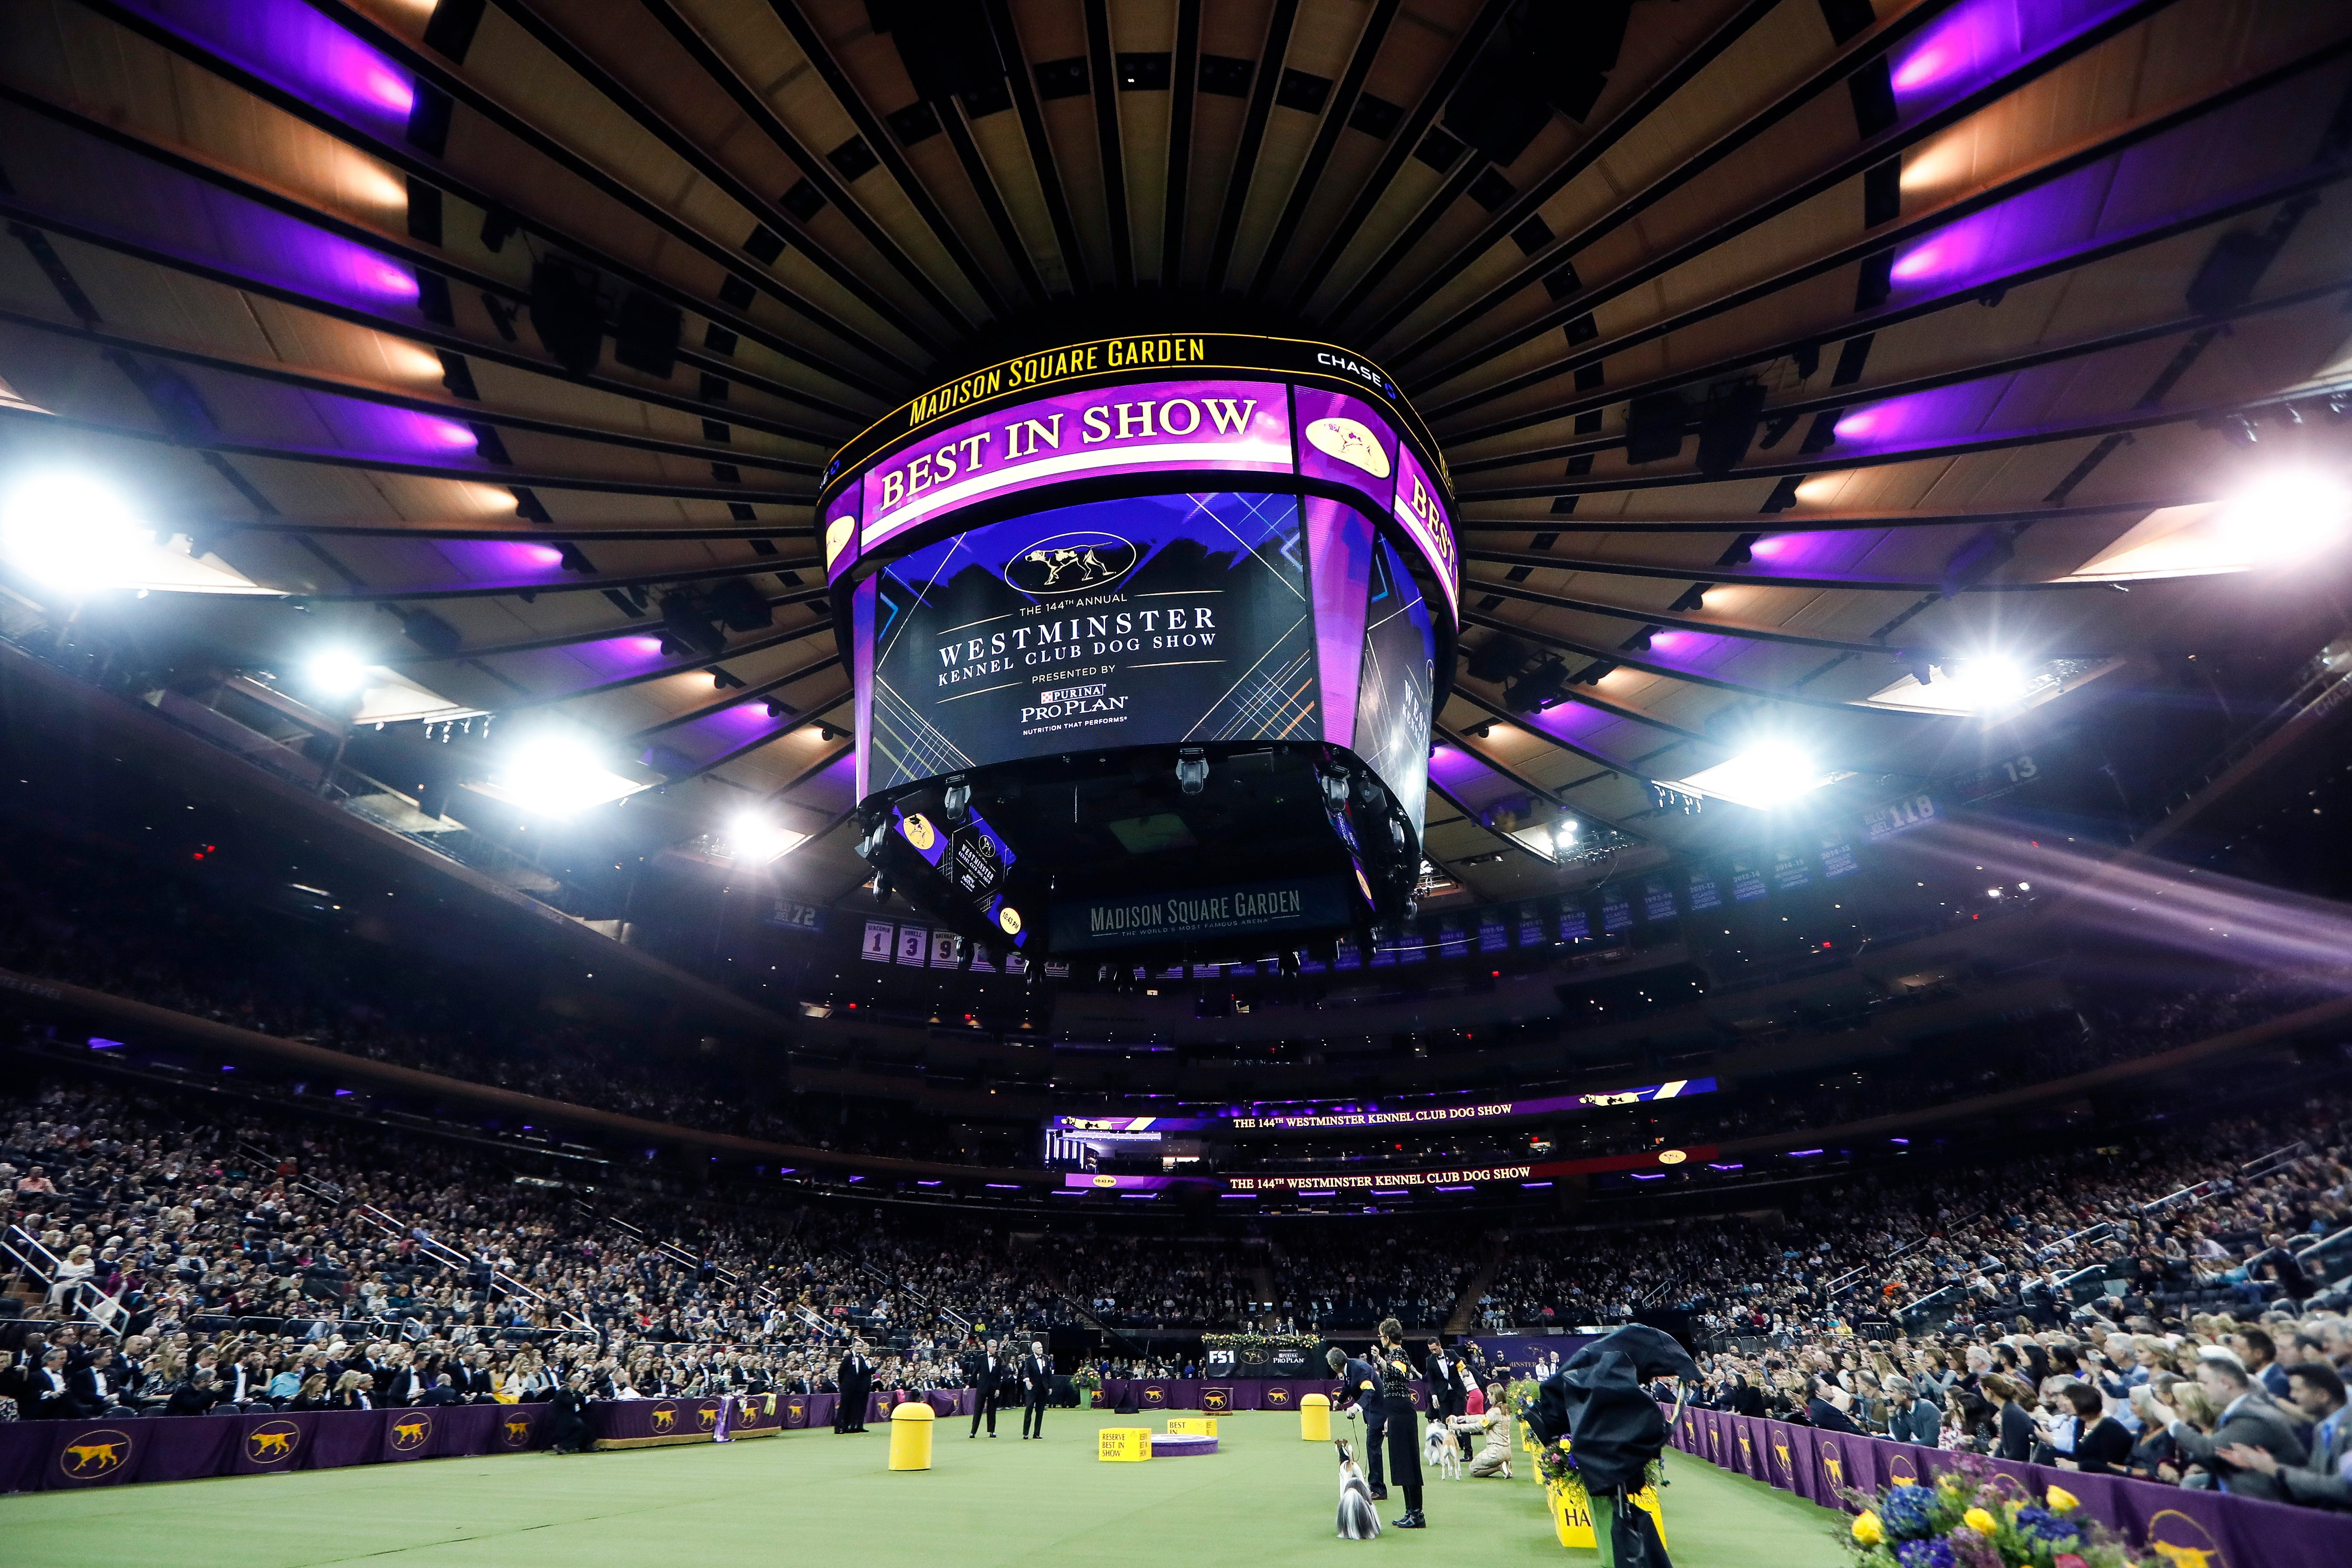 Wanna go for a walk? Westminster dog show leaves NYC for '21